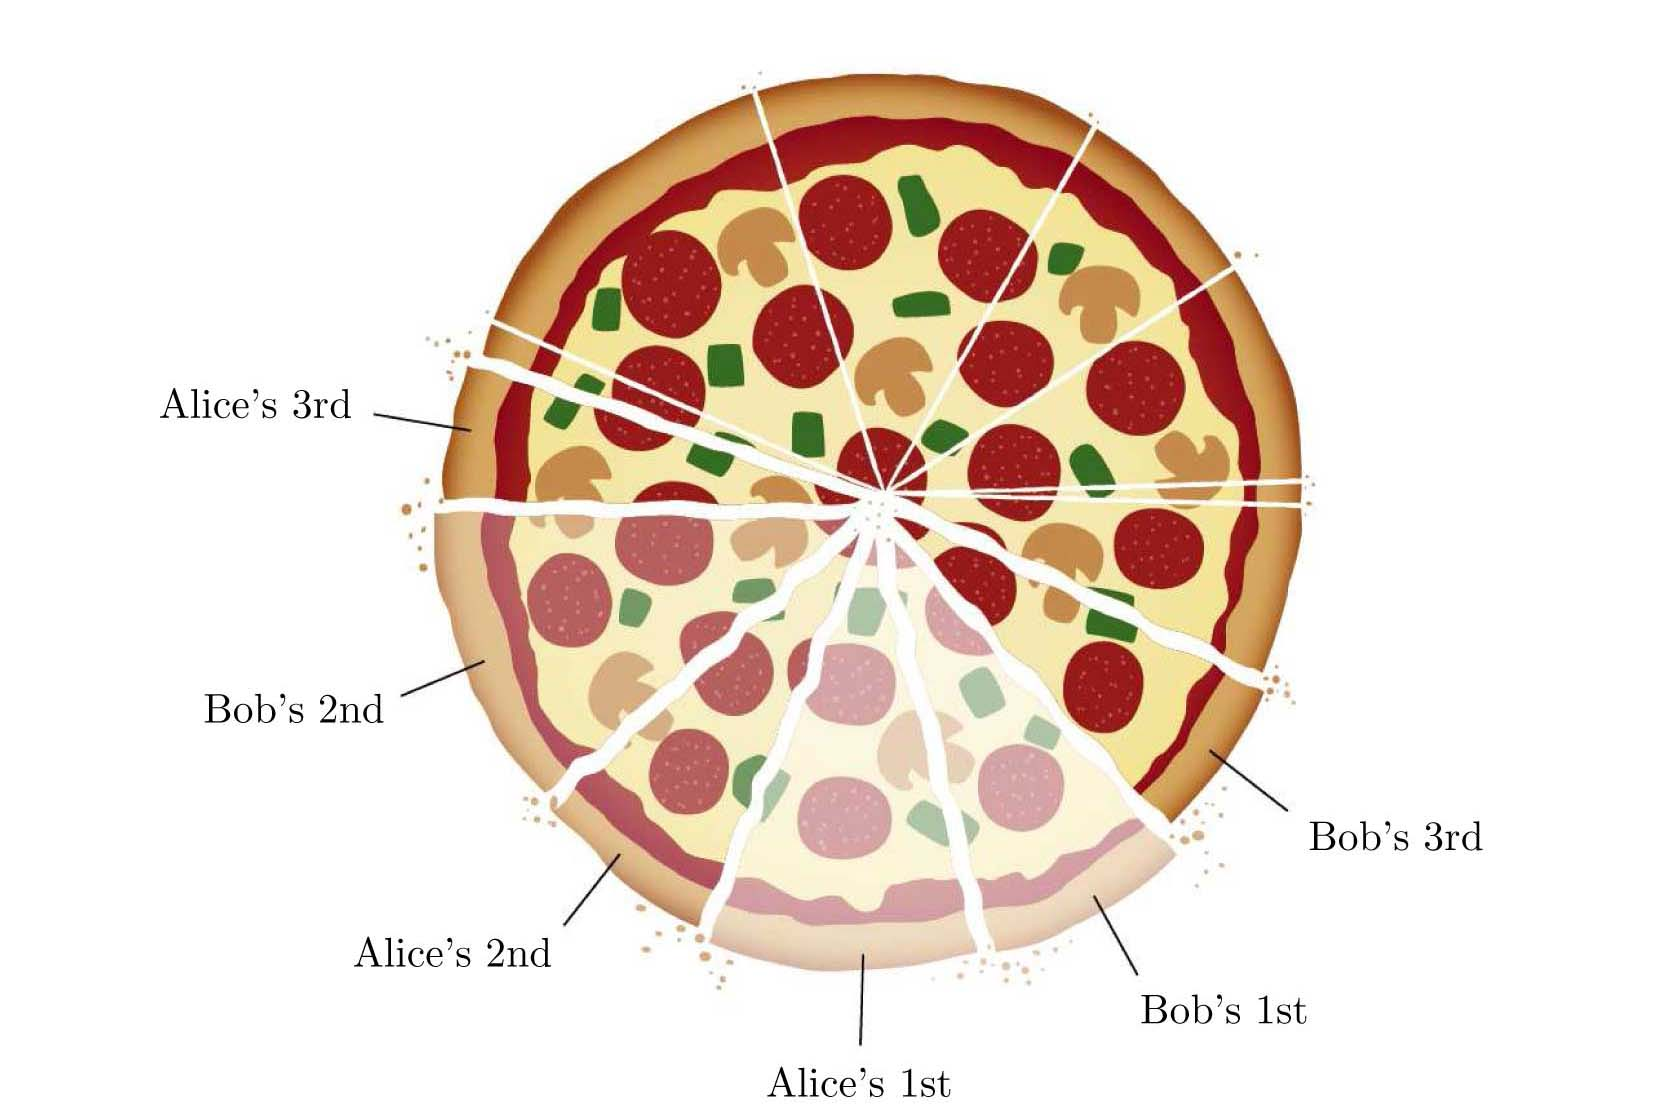 pizza theorem spicchi